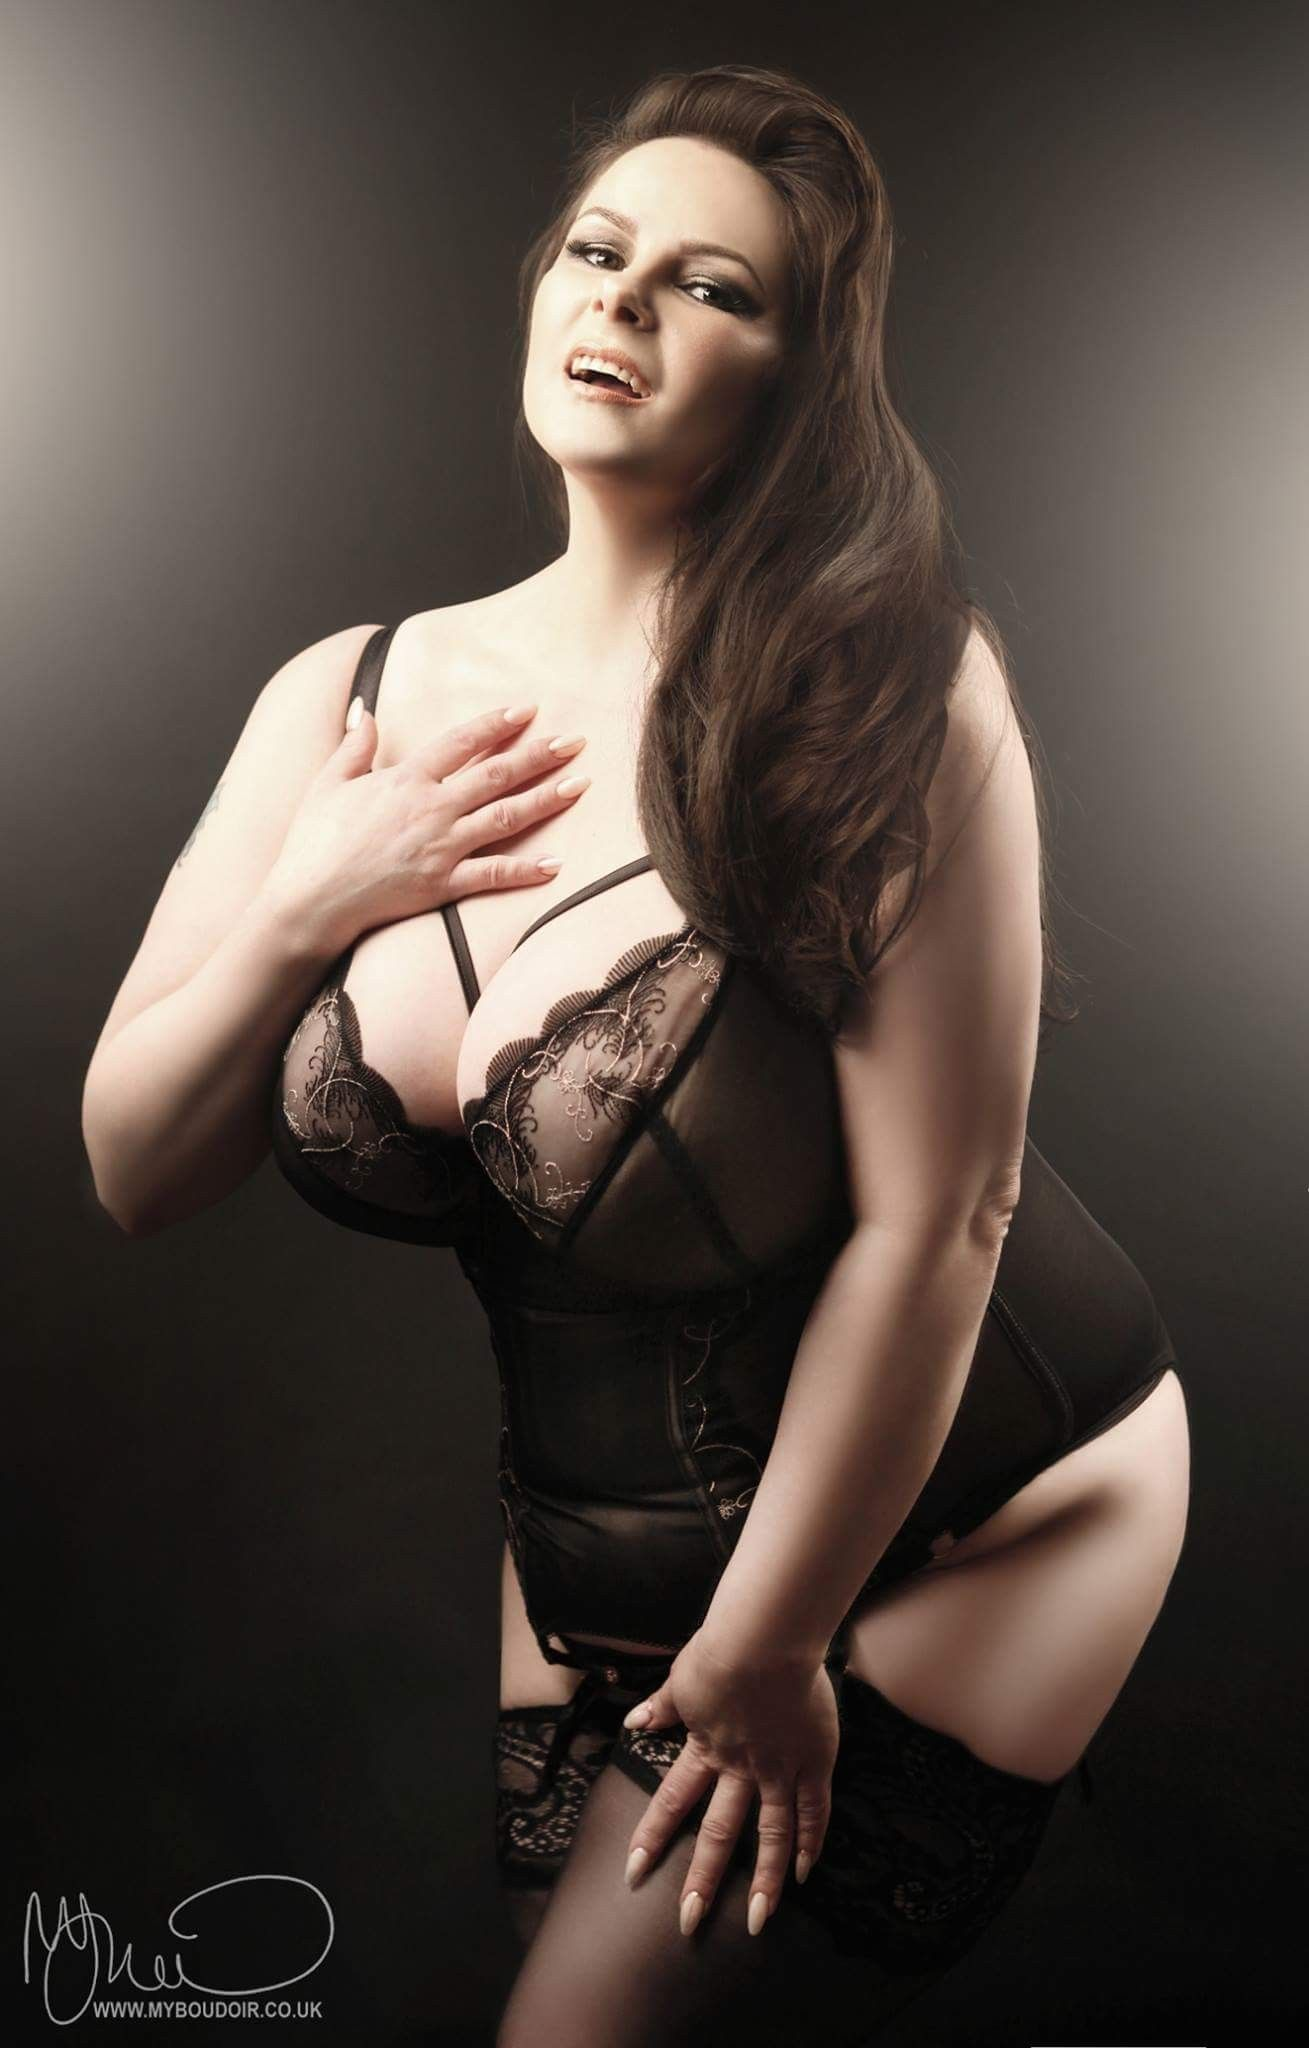 1a7b244c6f96c Beautiful plus-size model Louise Varns - by My Boudoir - Make-Over Boudoir  Photography